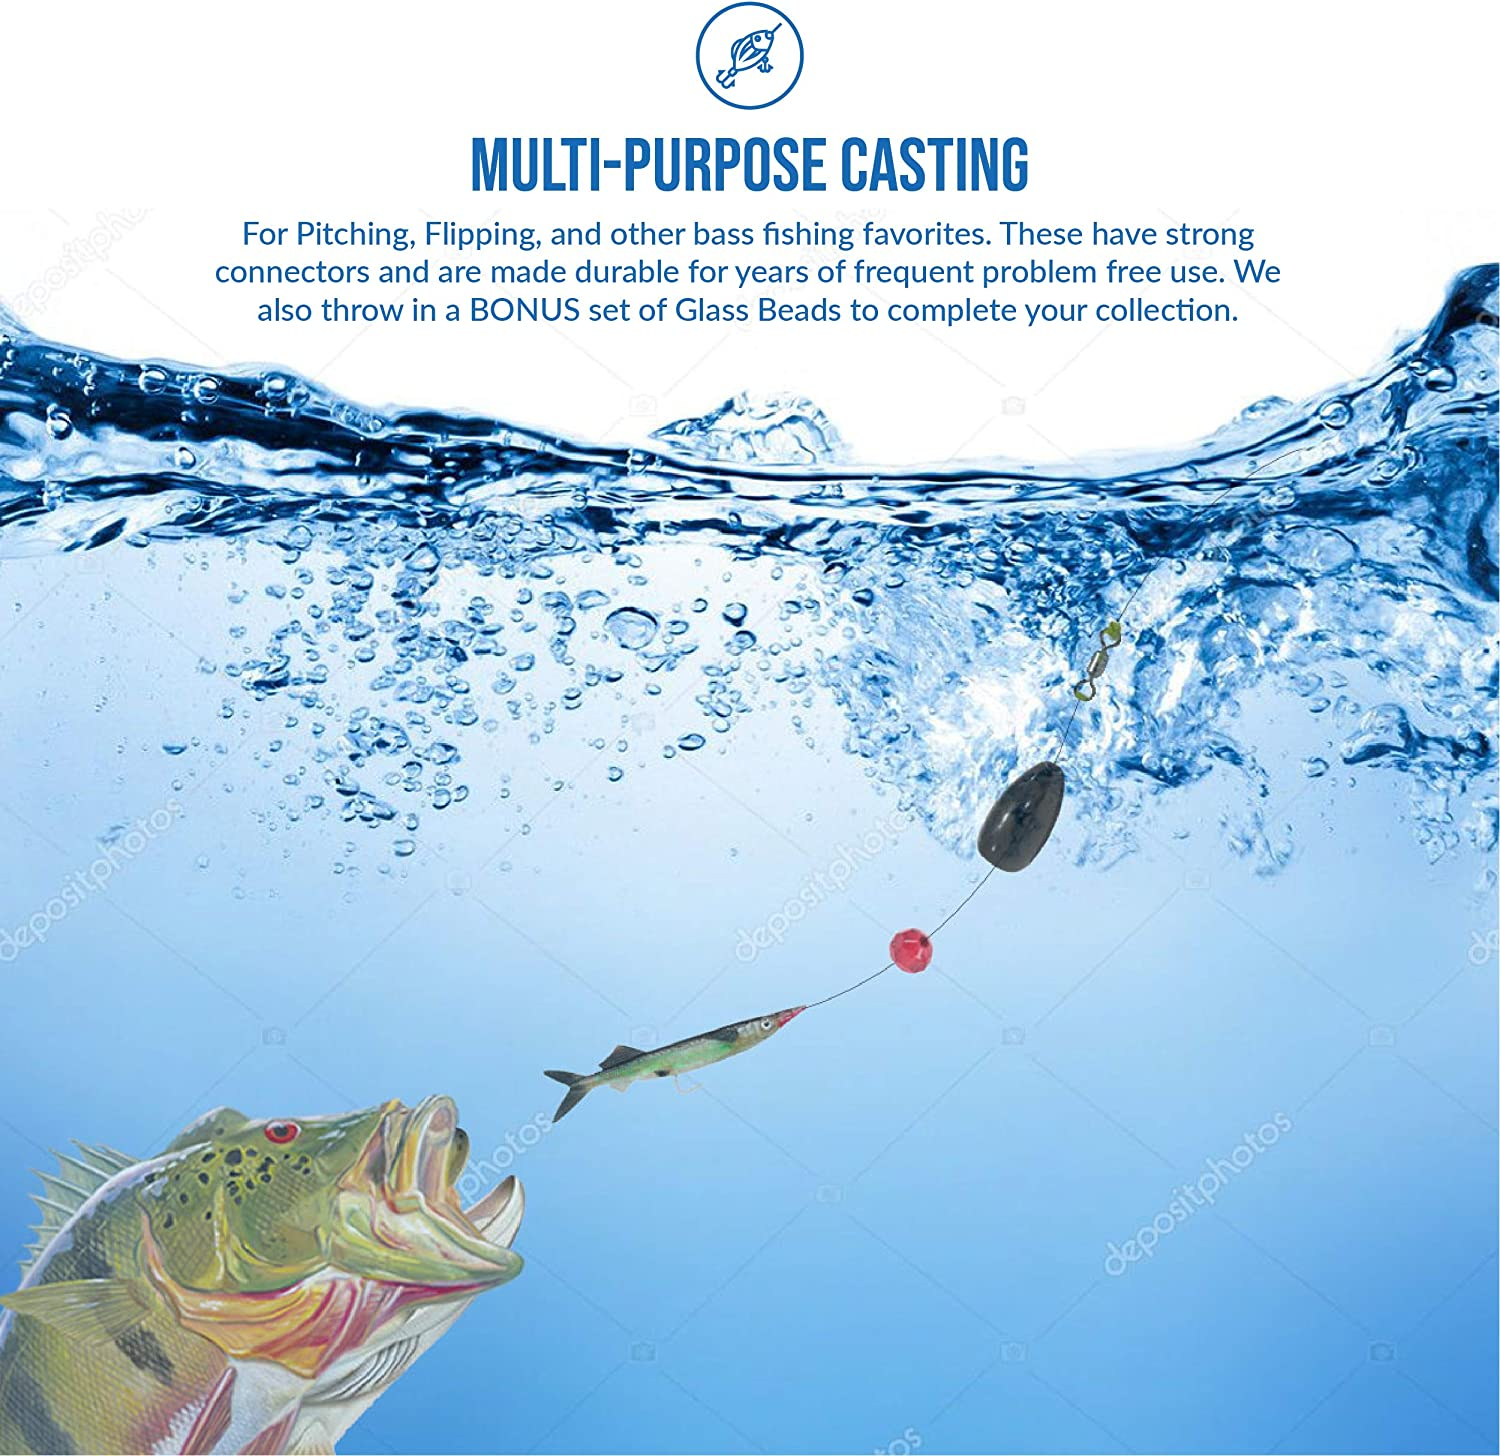 6 Bonus Glass Beads to Attract More Fishes Quick Click Solutions Premium 6 Pack Tungsten Bass Fishing Pitching Flipping Bullet Weights Multiple Sizes and Colors.